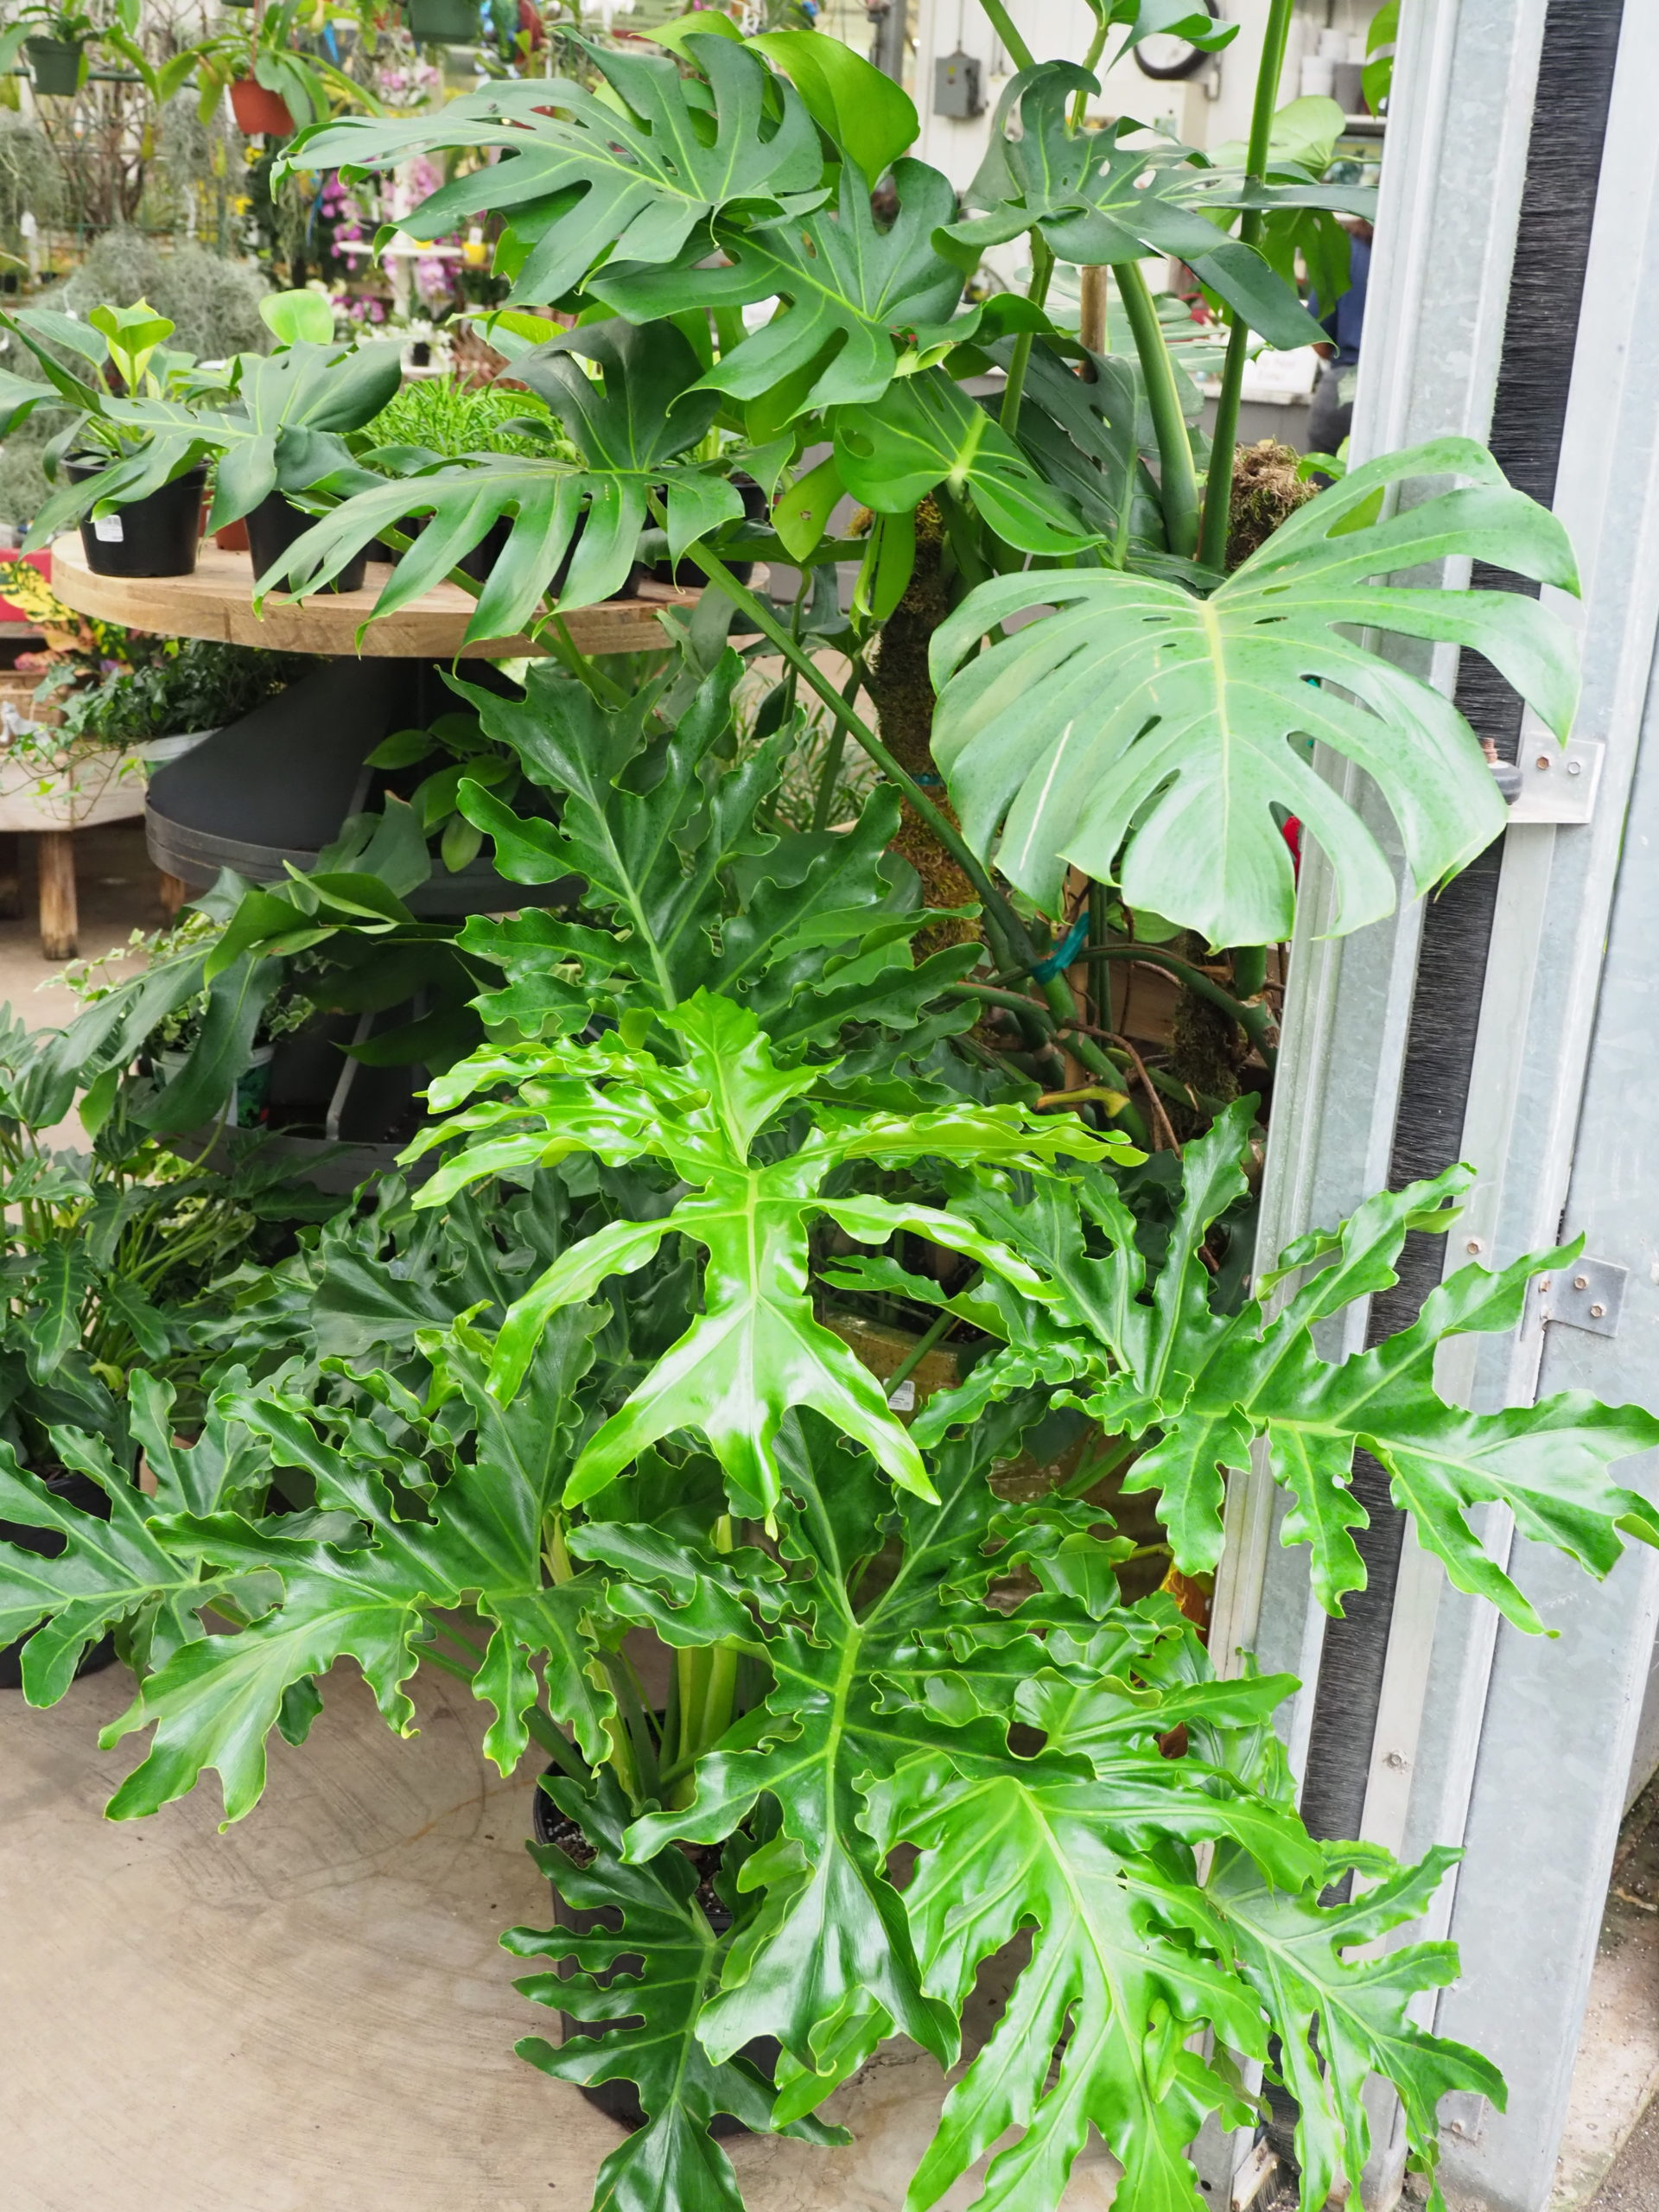 Selloum philodendrons make good low-to-moderate-light houseplants, but vine types should be trained on a stake. Most vine plants want to climb. Easily managed with pruning, there are several varieties. No real serious insect or disease issues.